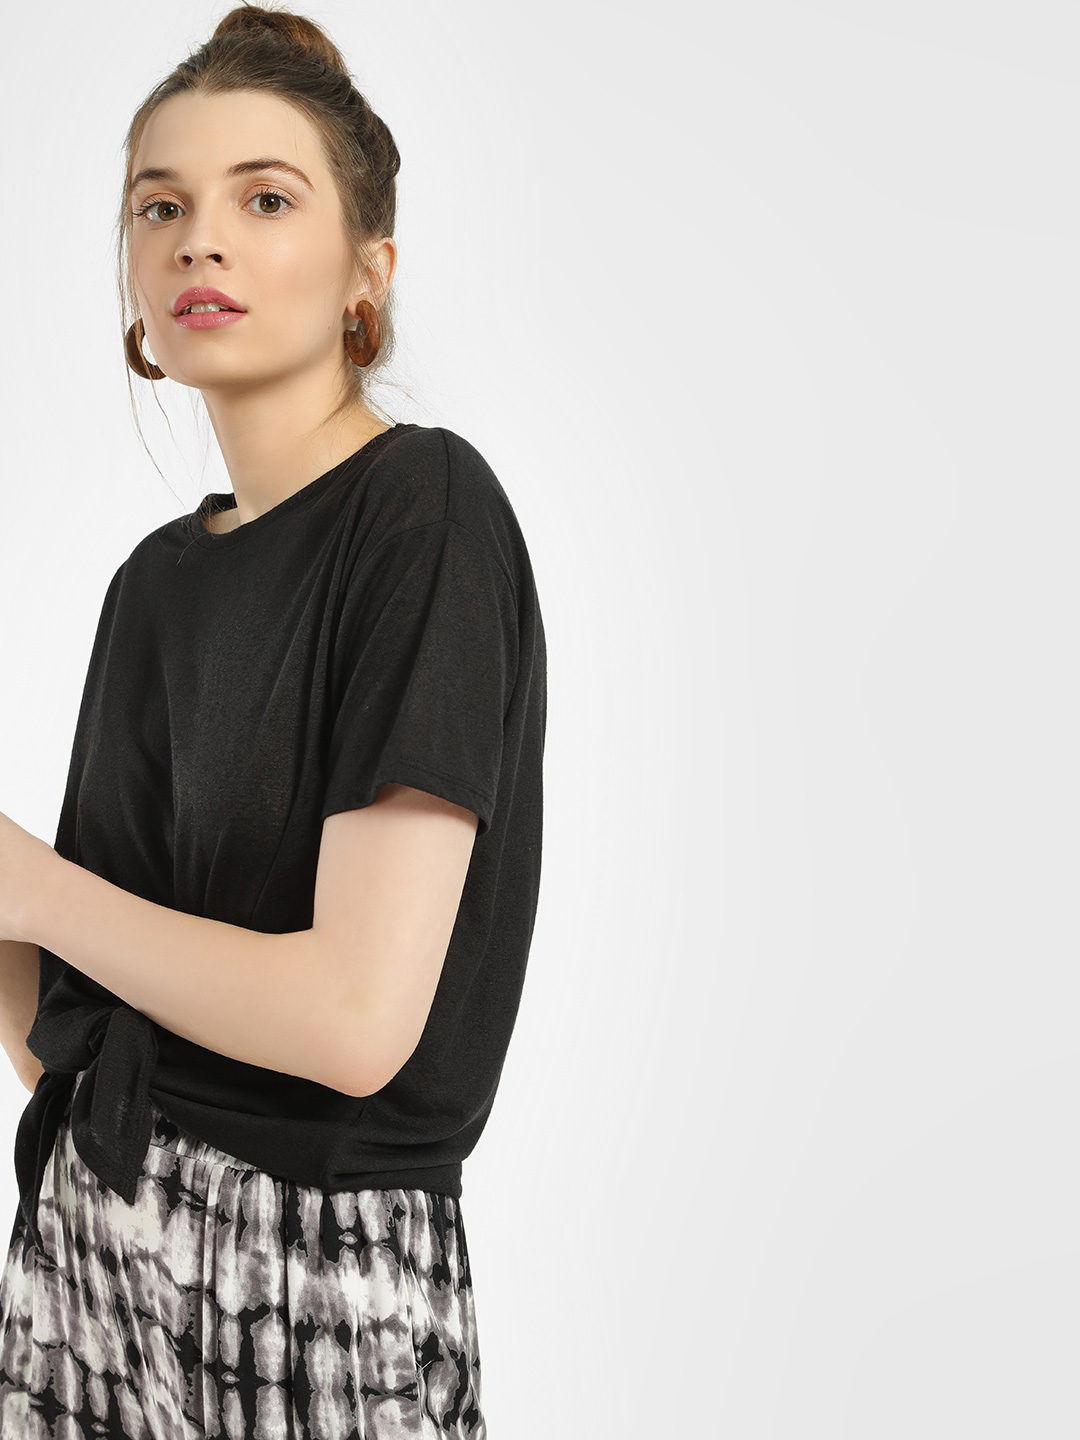 New Look Black Tie-Knot Cropped T-Shirt 1